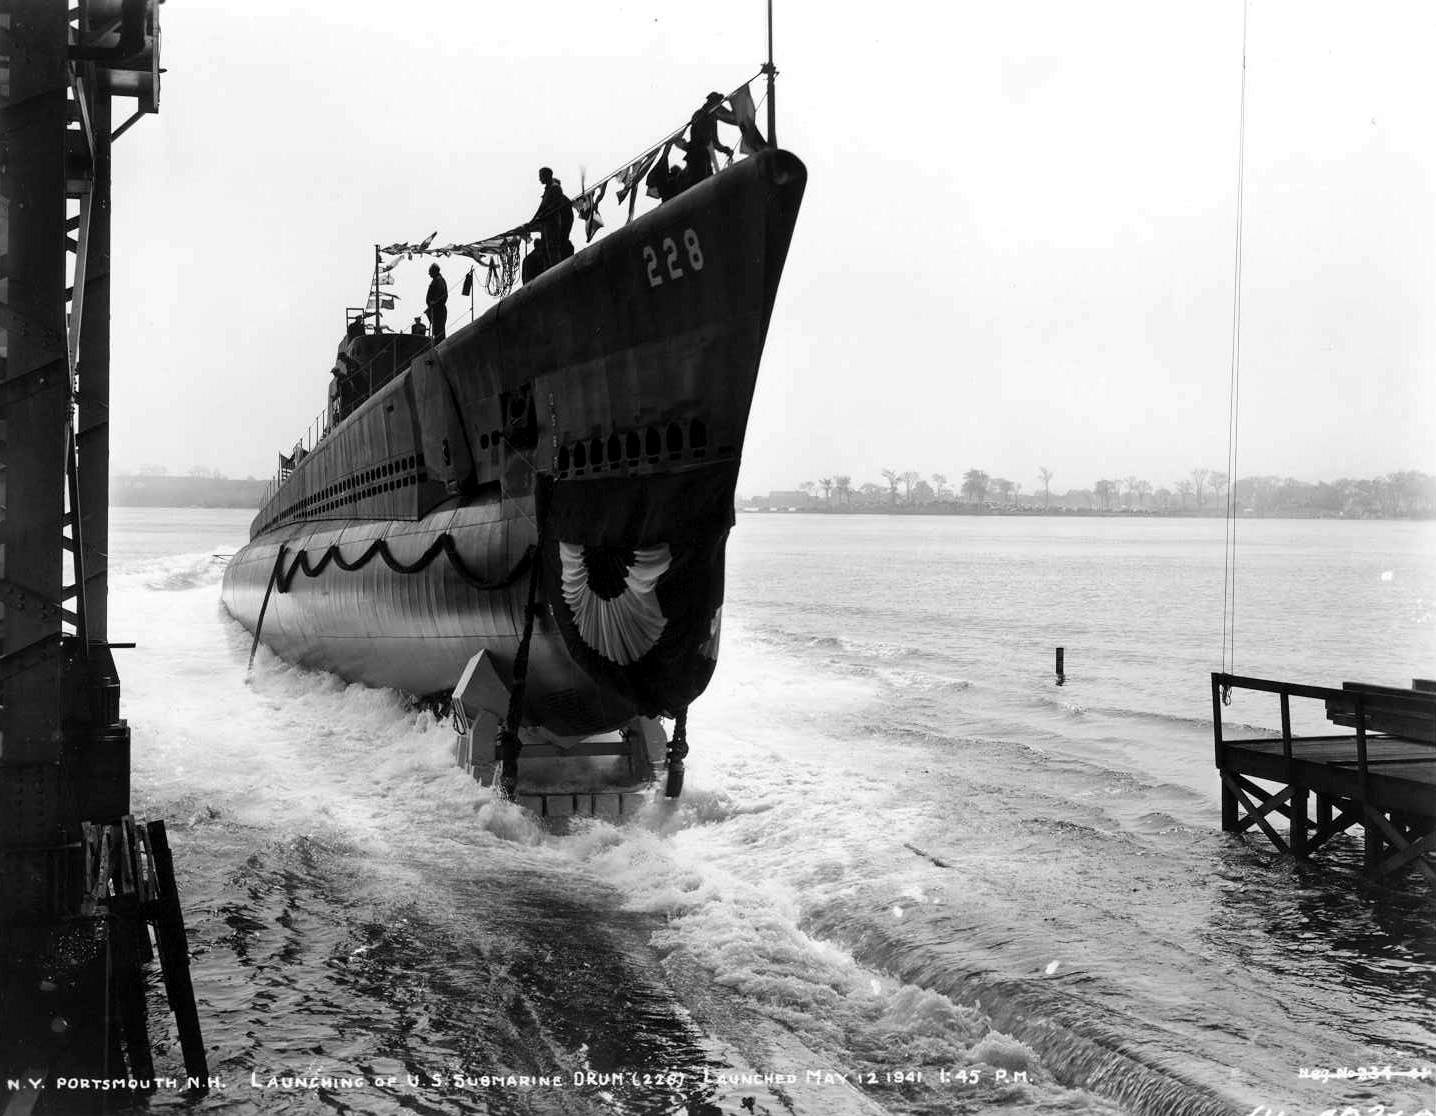 uss drum (ss-228) history